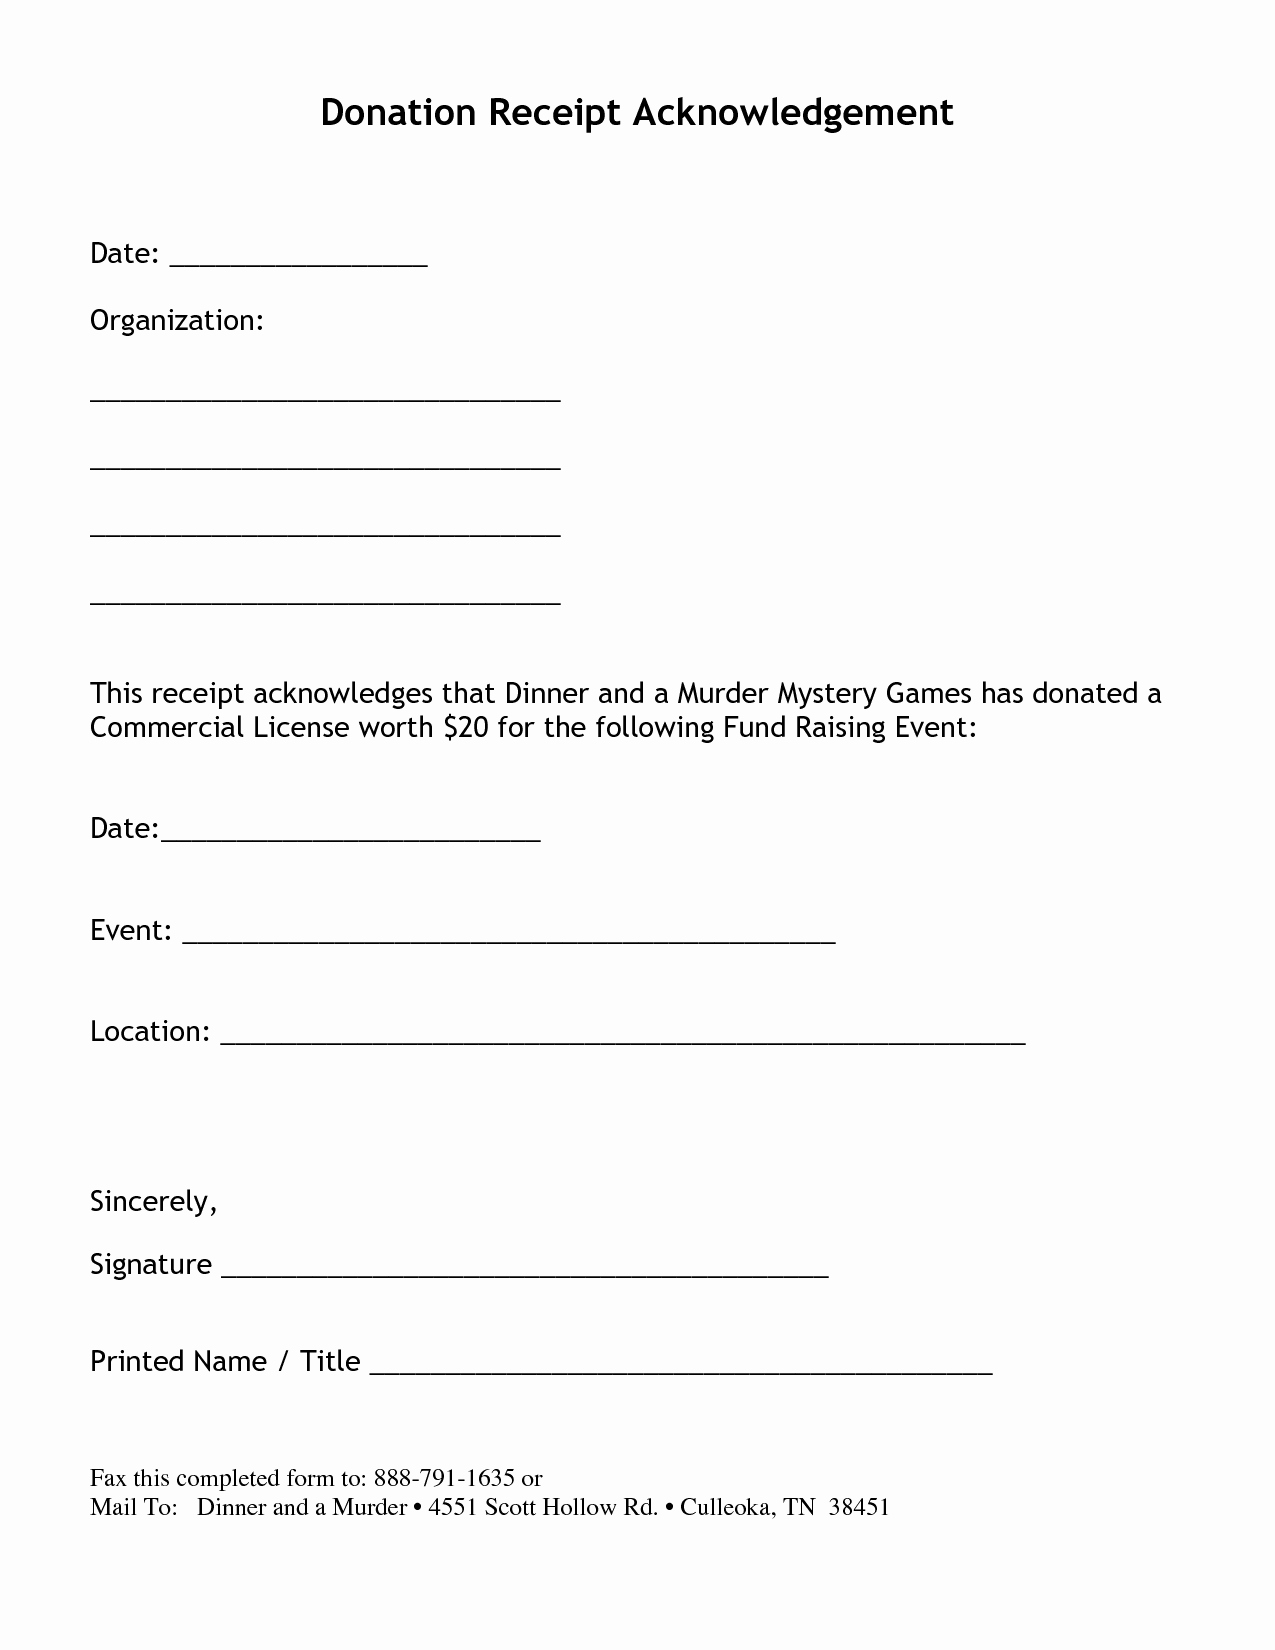 Donation Receipt Letter Template Awesome Non Profit Donation Receipt Letter Things & Stuff